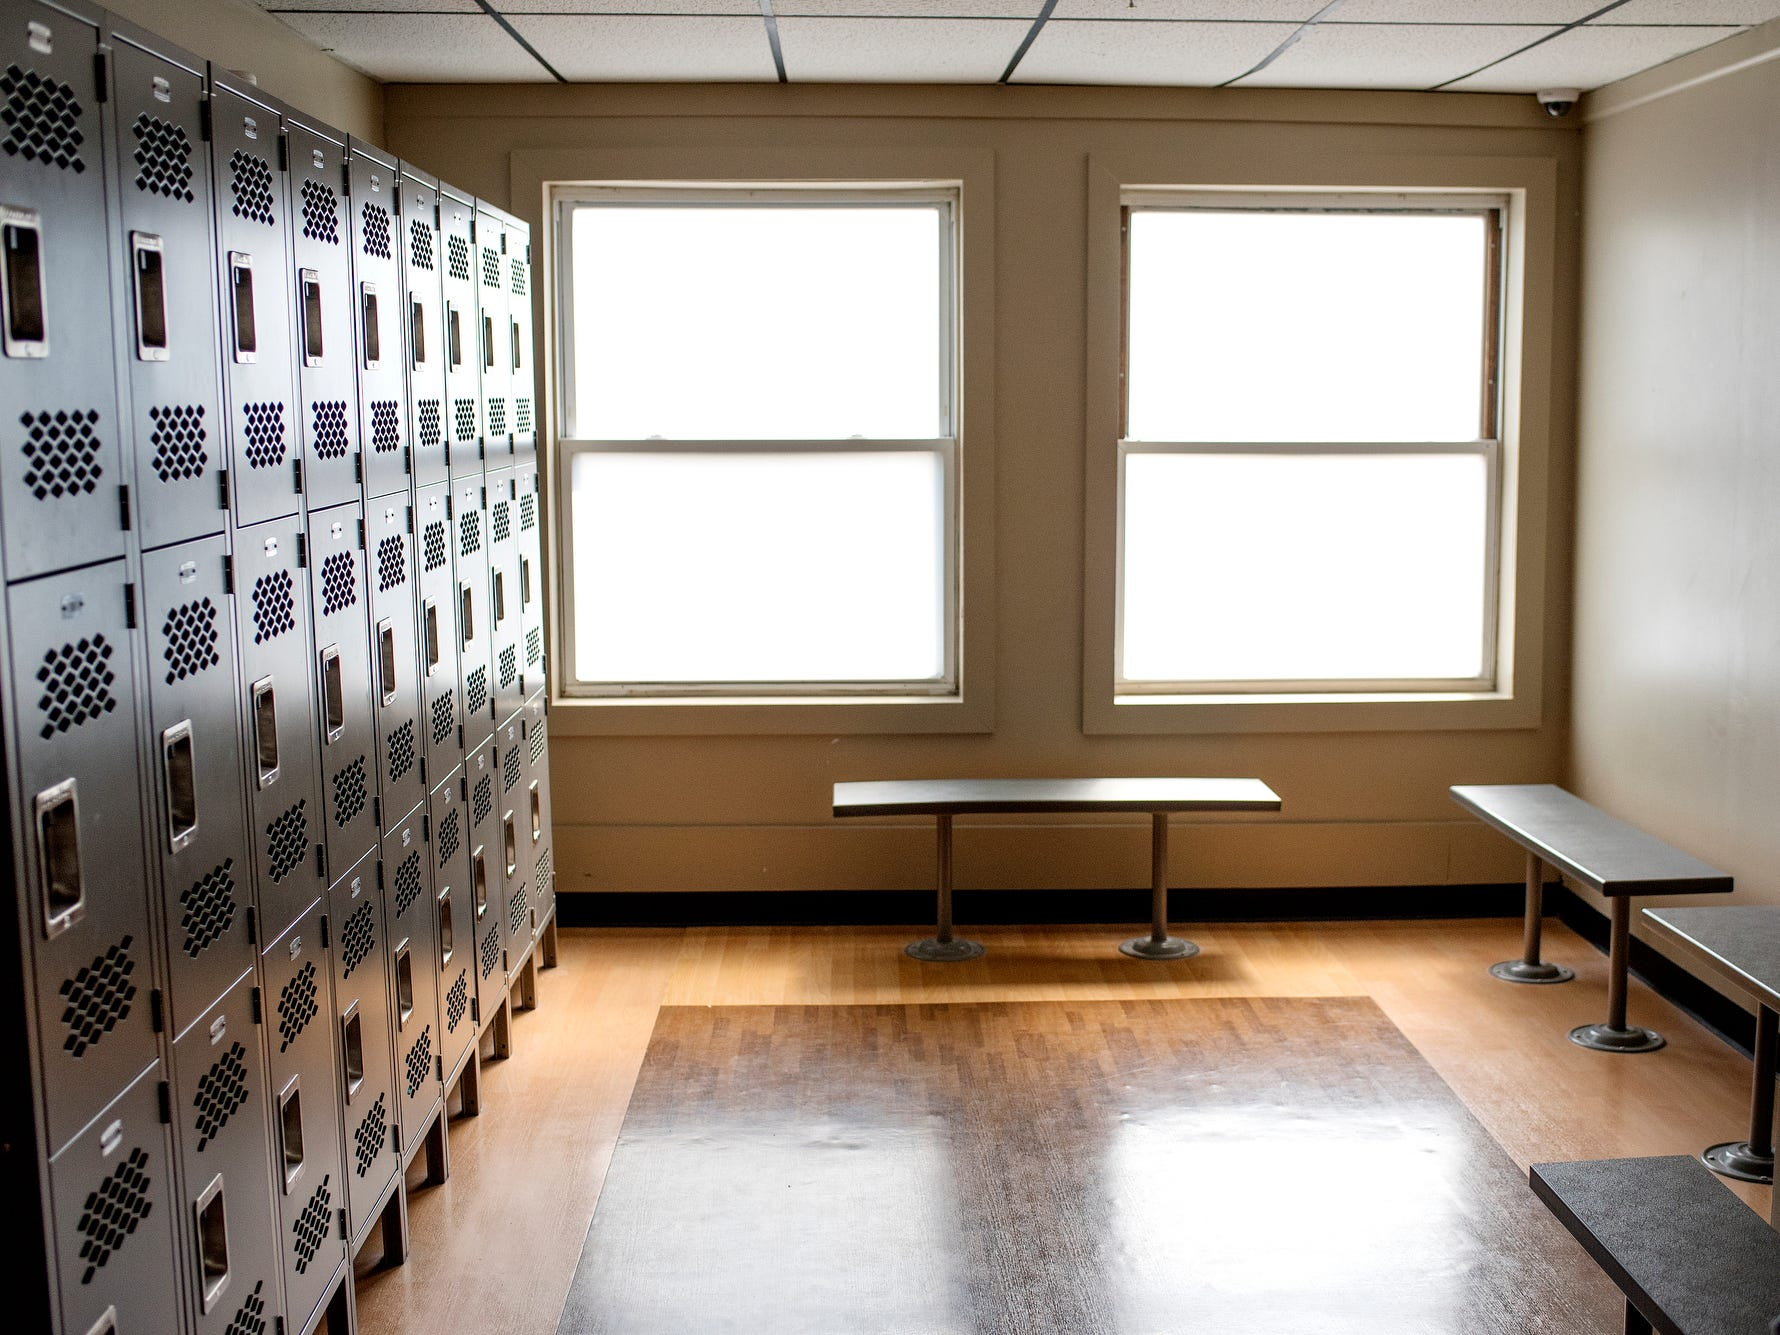 A locker room for guests photographed during a tour of the City Rescue Mission on Tuesday, Sept. 4, 2018, in downtown Lansing.